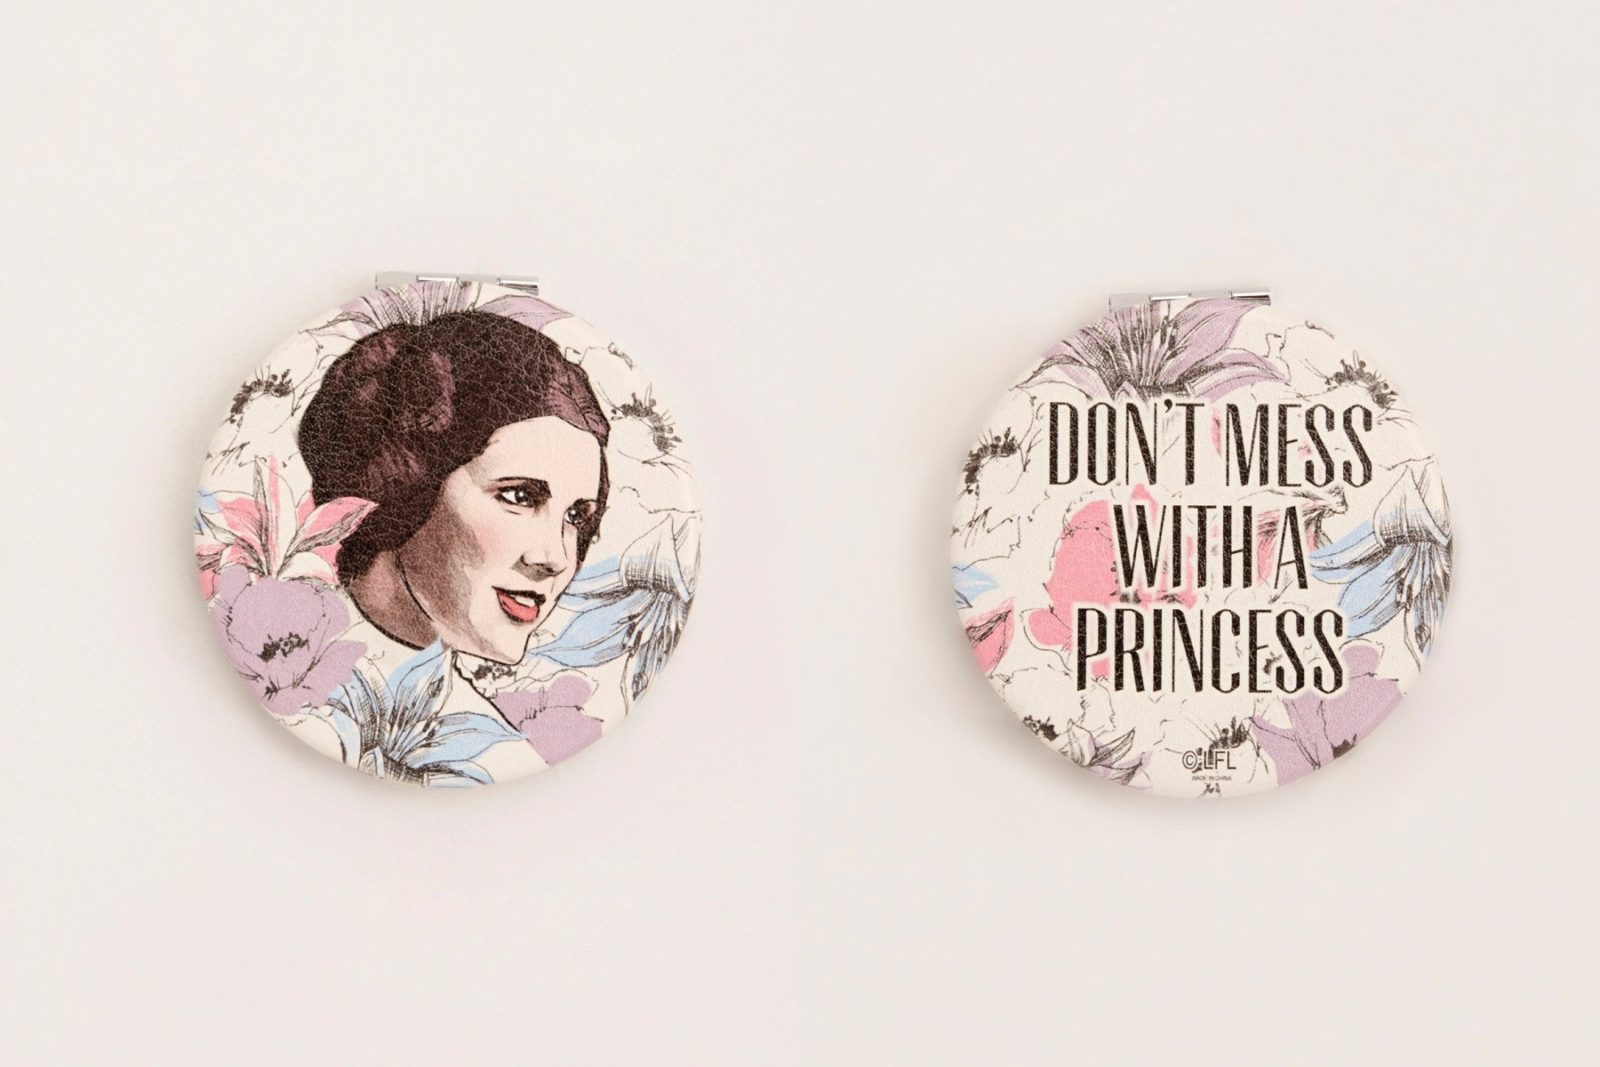 Princess Leia Compact Mirror at Torrid